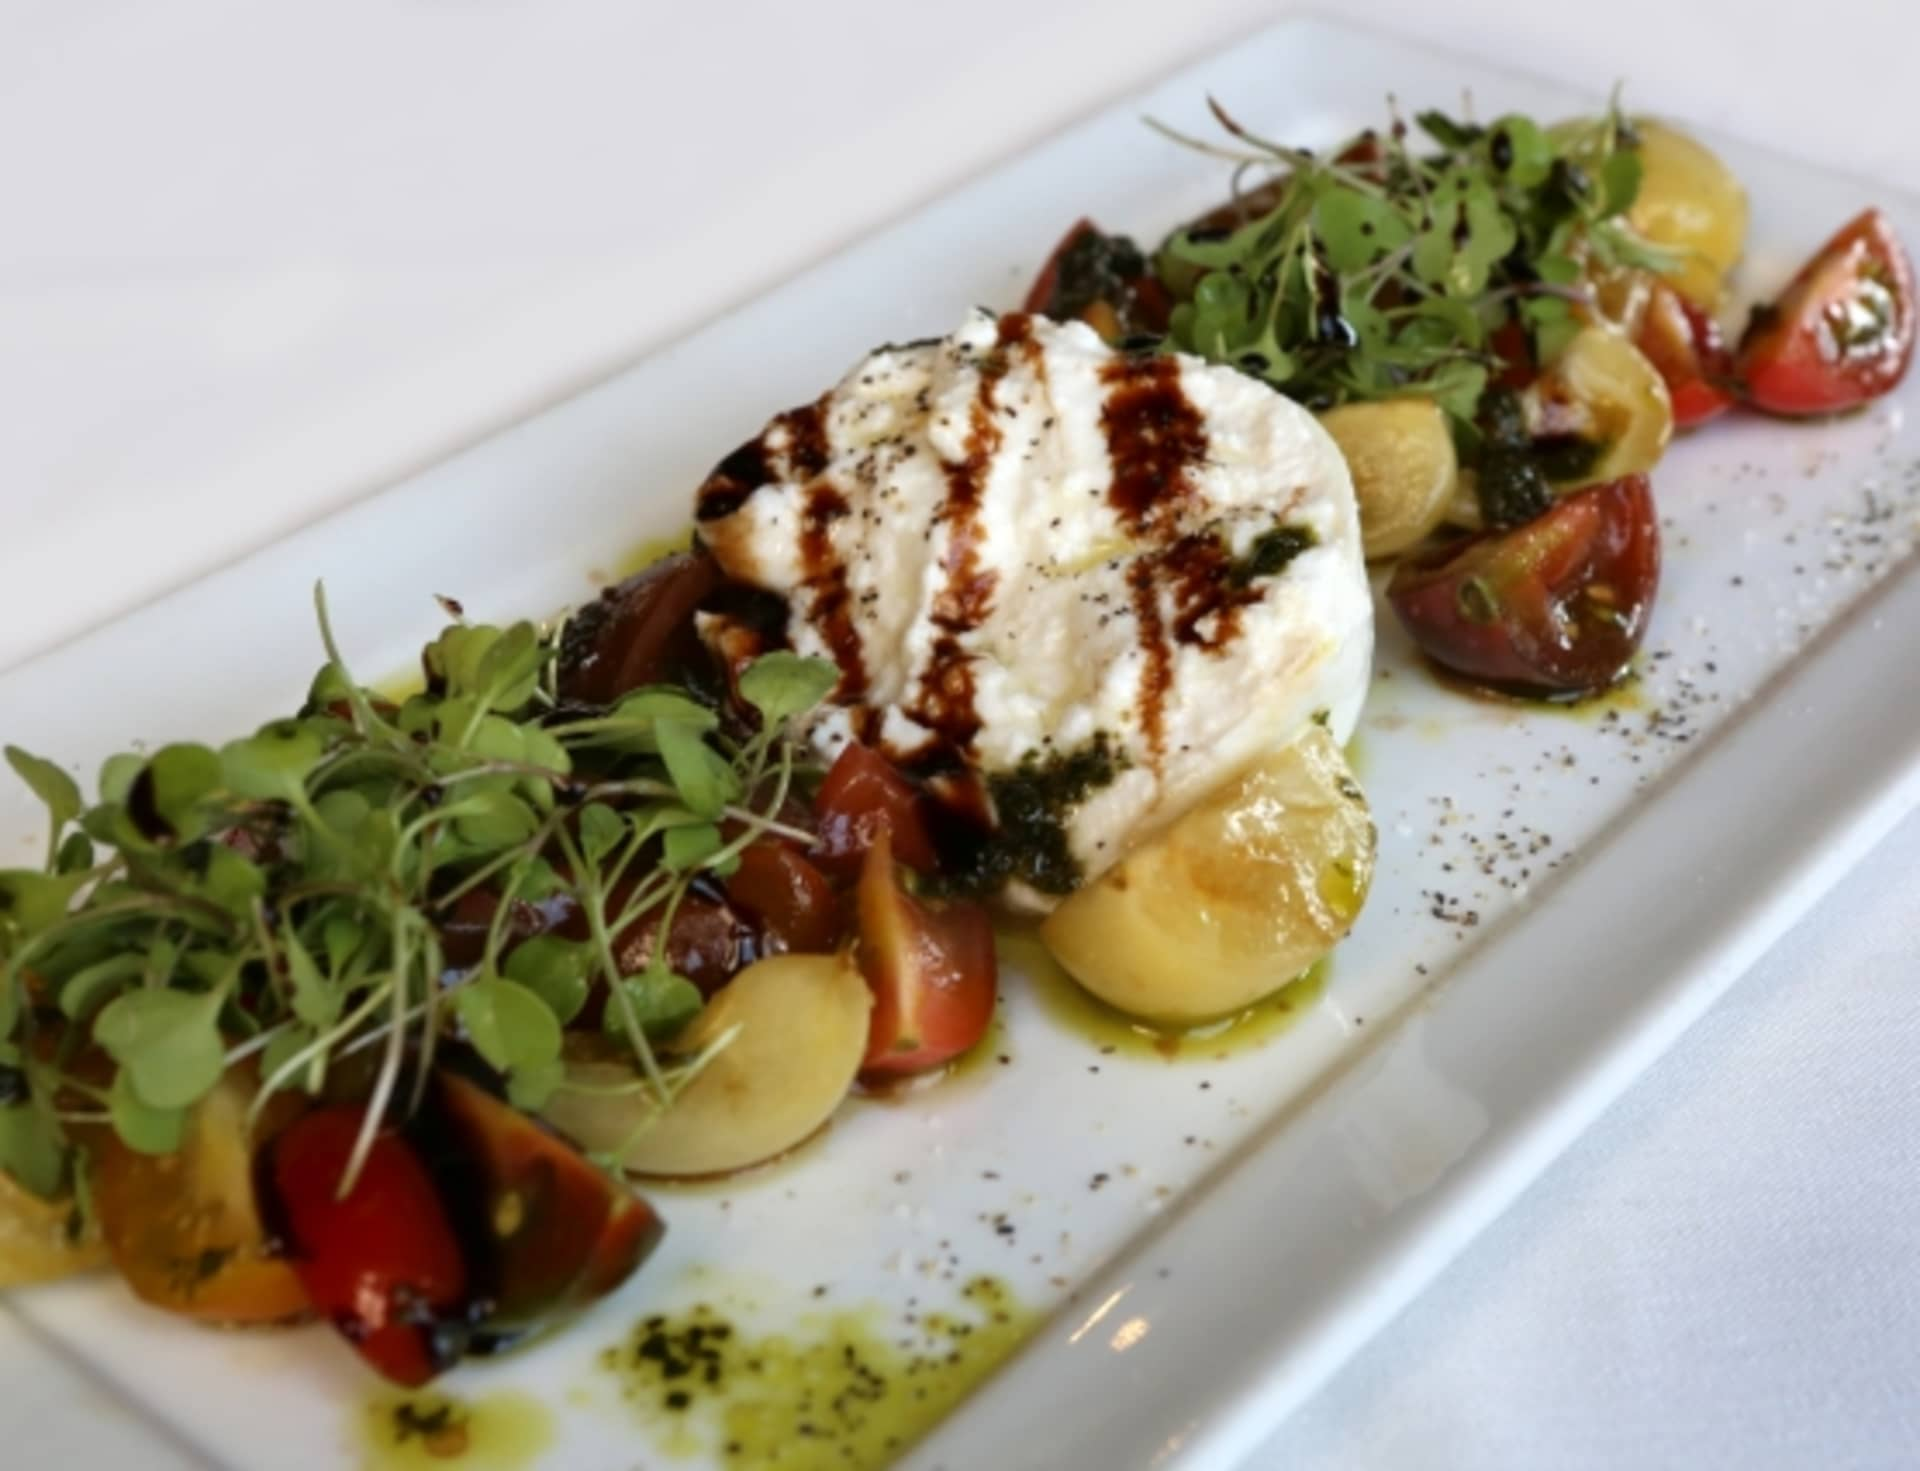 BURRATA & ORGANIC HEIRLOOM TOMATO SALAD